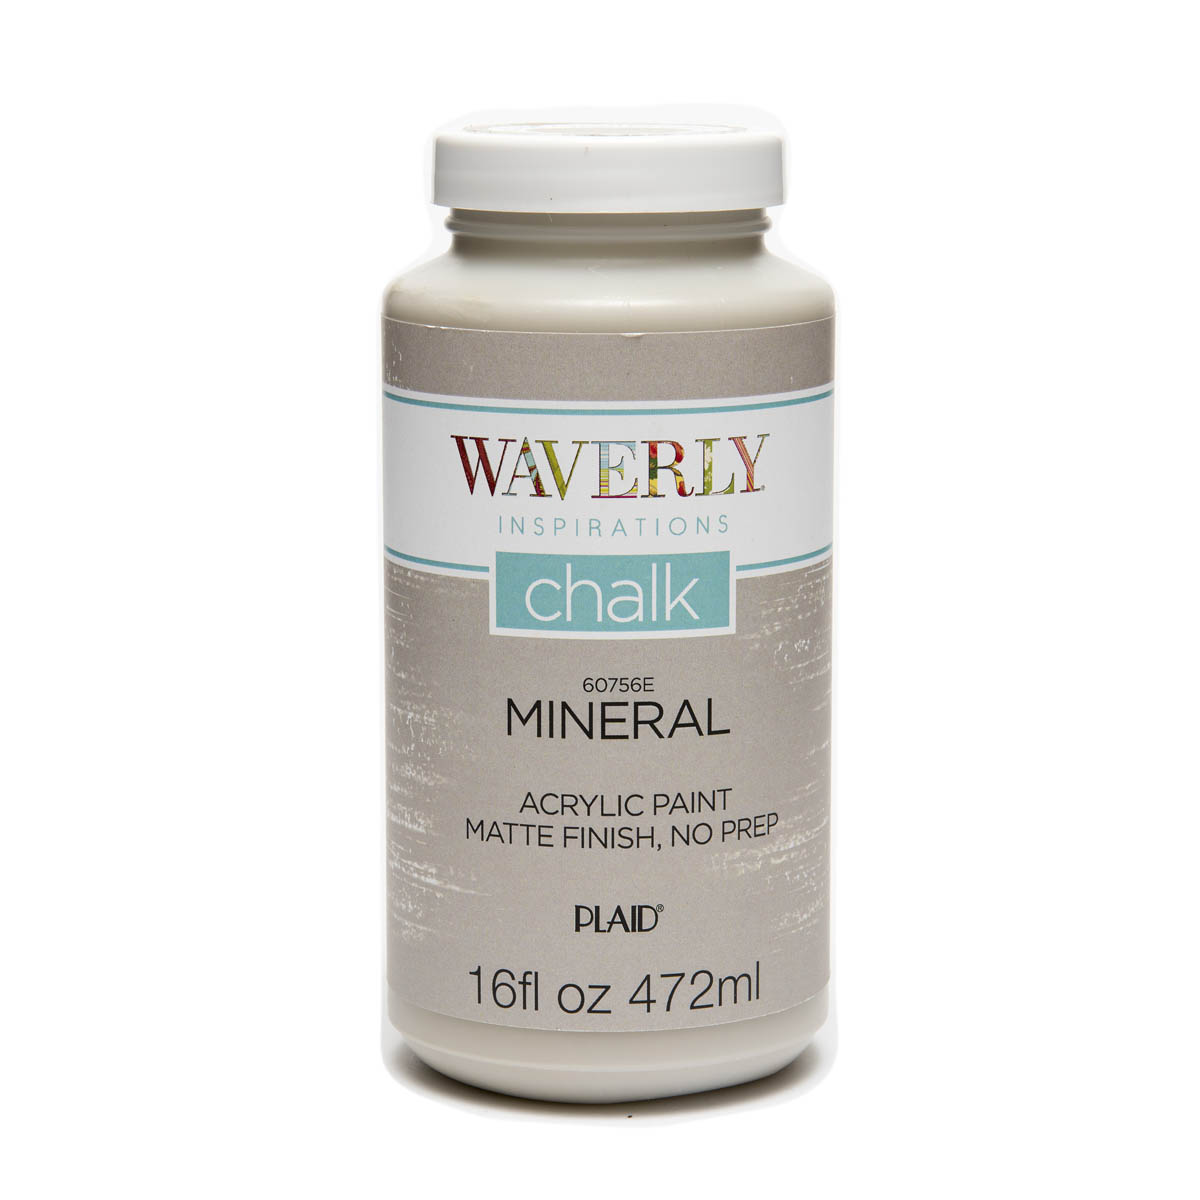 Waverly ® Inspirations Chalk Finish Acrylic Paint - Mineral, 16 oz. - 60756E